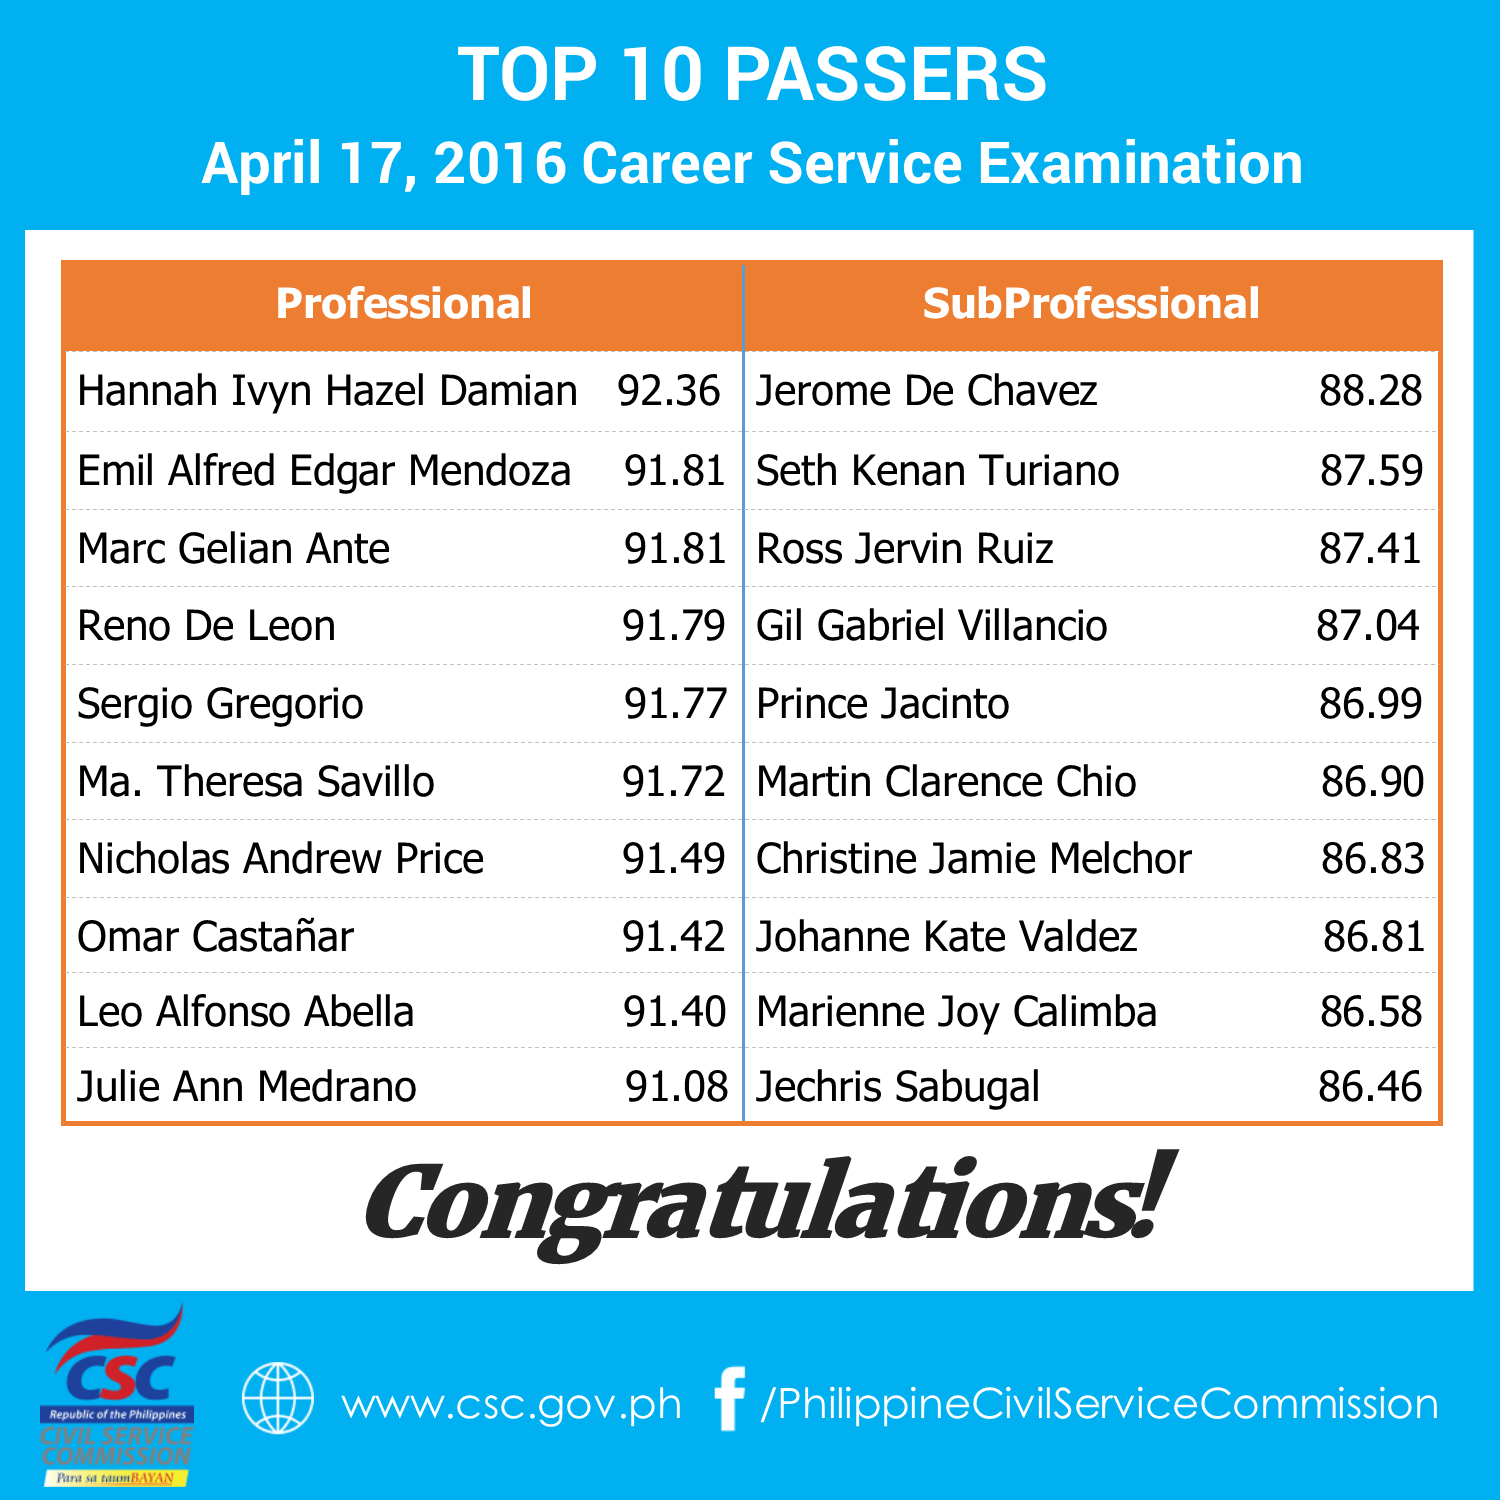 Top 10 Passers for April 17, 2016 Civil Service Exam (CSE-PPT)